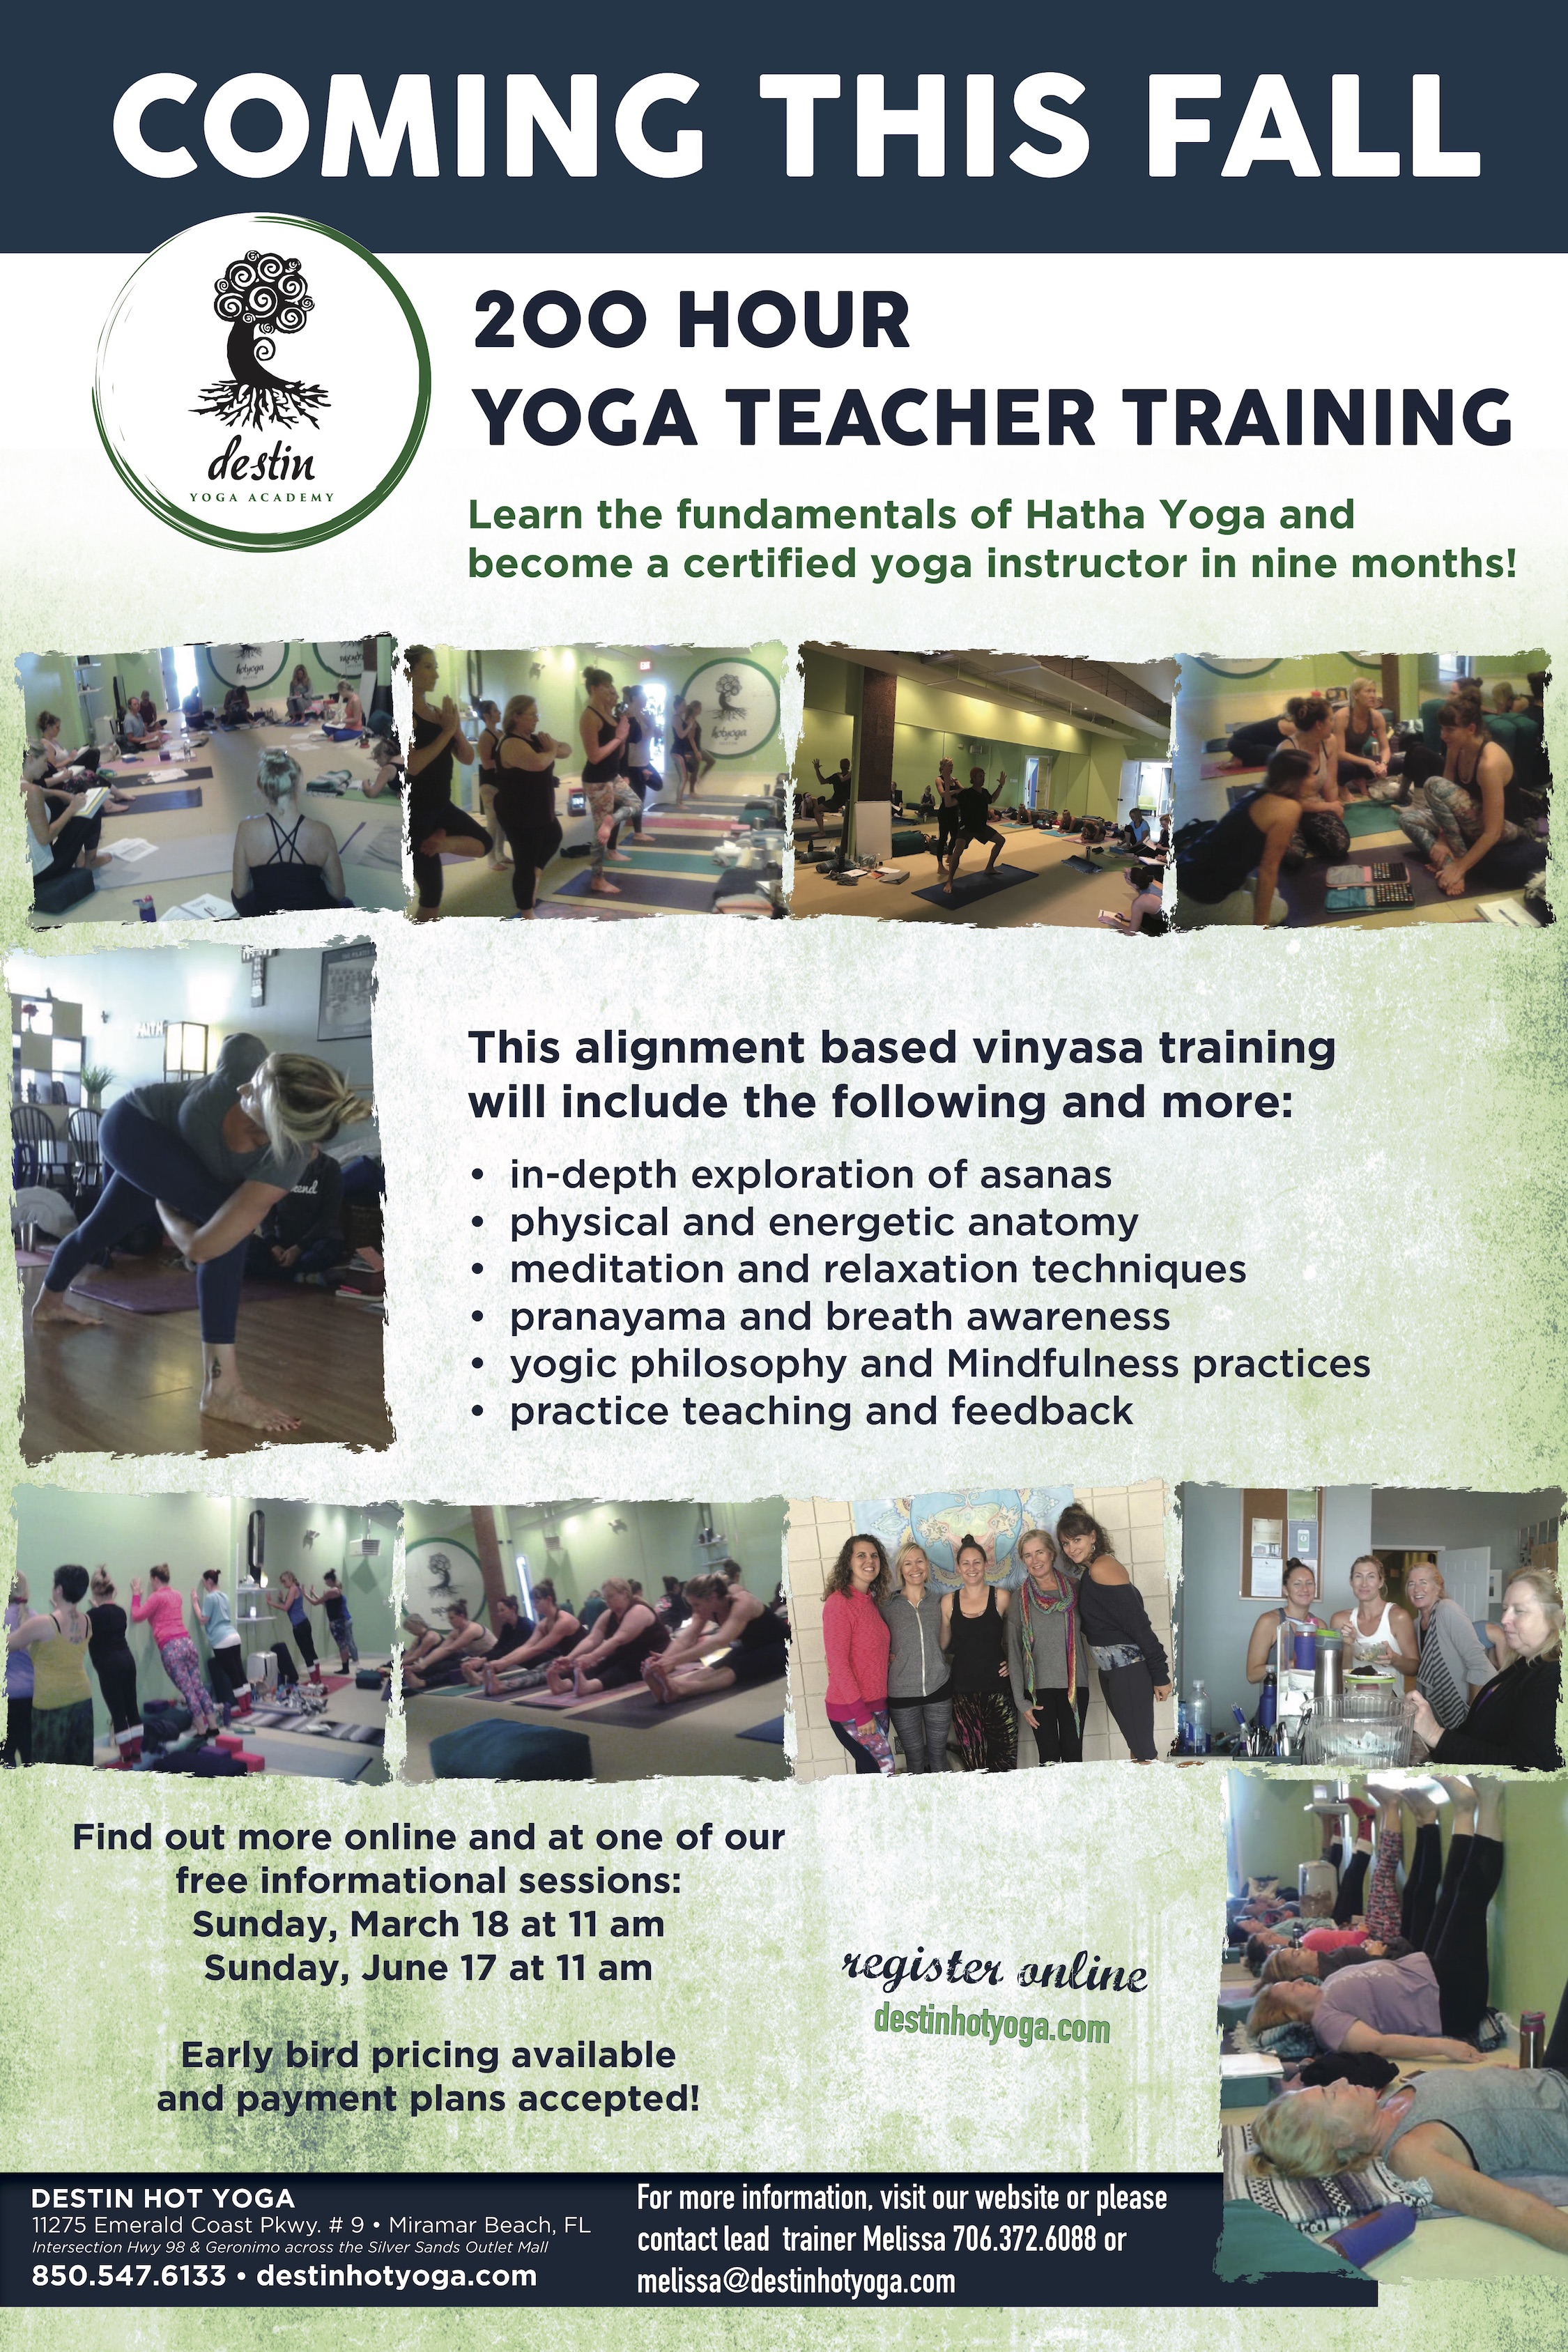 200 Hour Yoga Teacher Training This Fall